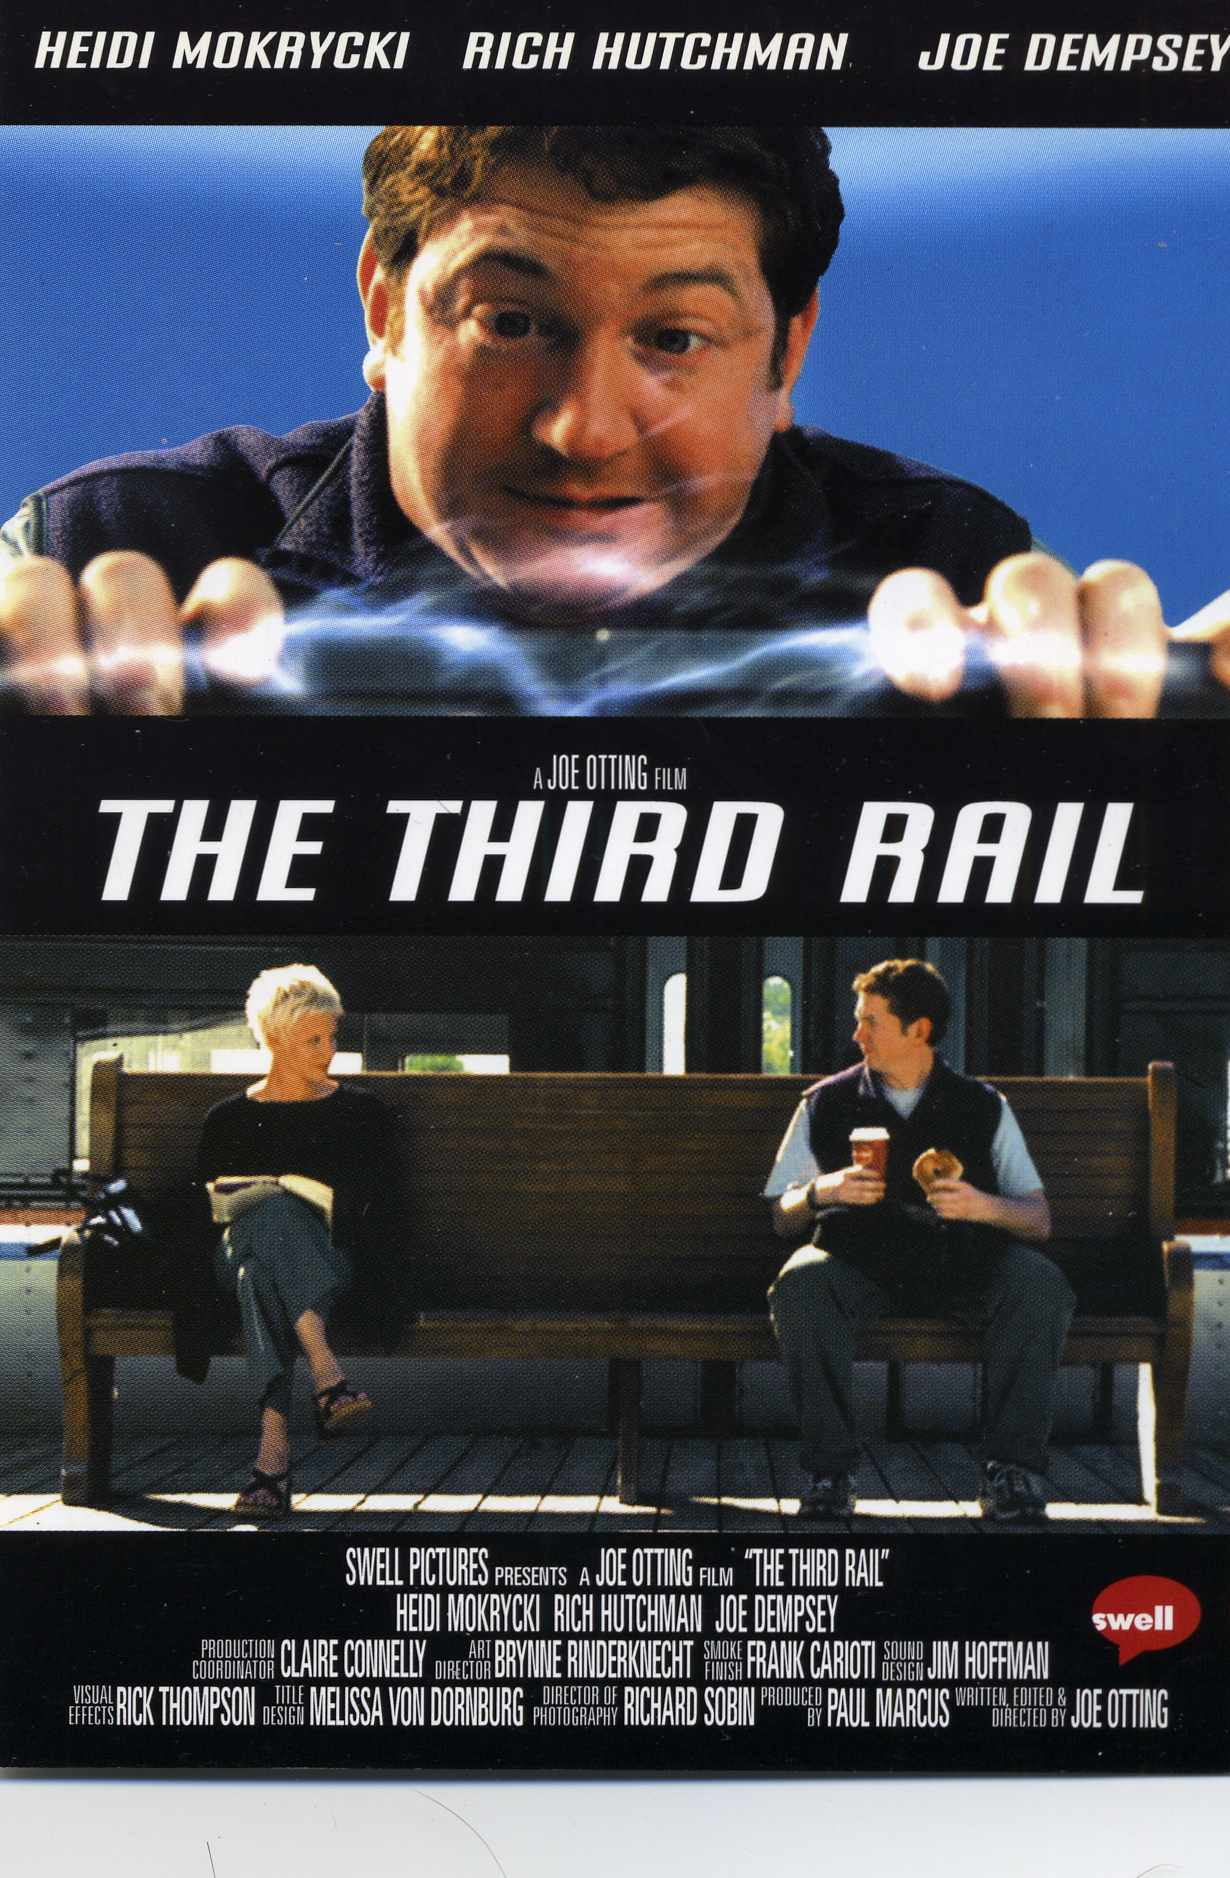 the third rail105.jpg